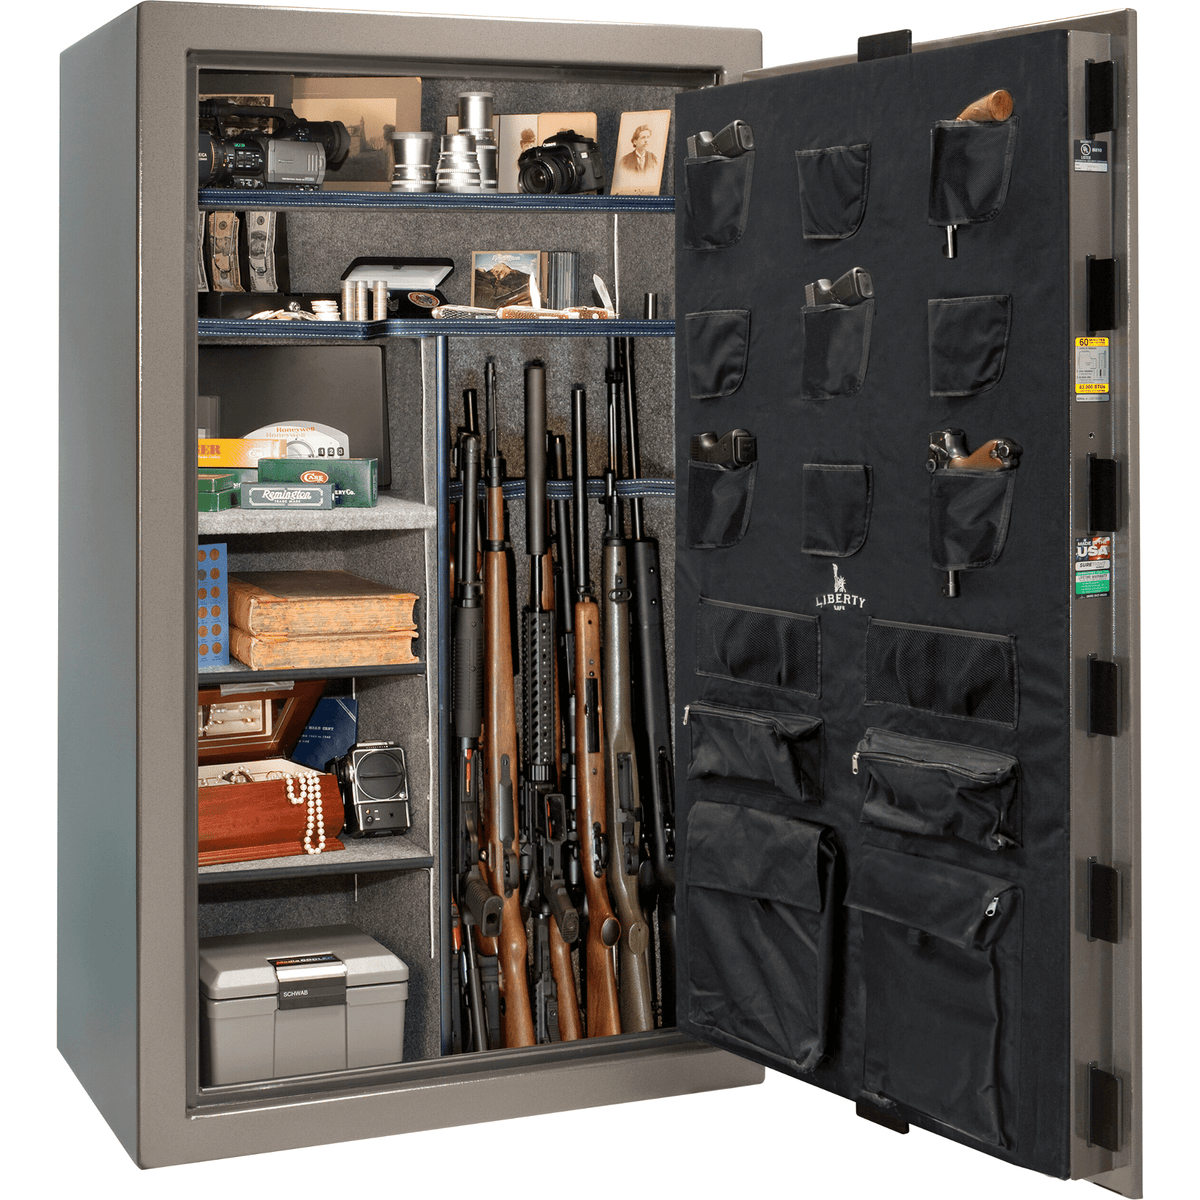 "Colonial | 50 | Level 3 Security | 60 Minute Fire Protection | Gray | Black Mechanical Lock | 72.5""(H) x 42""(W) x 30.5""(D)"